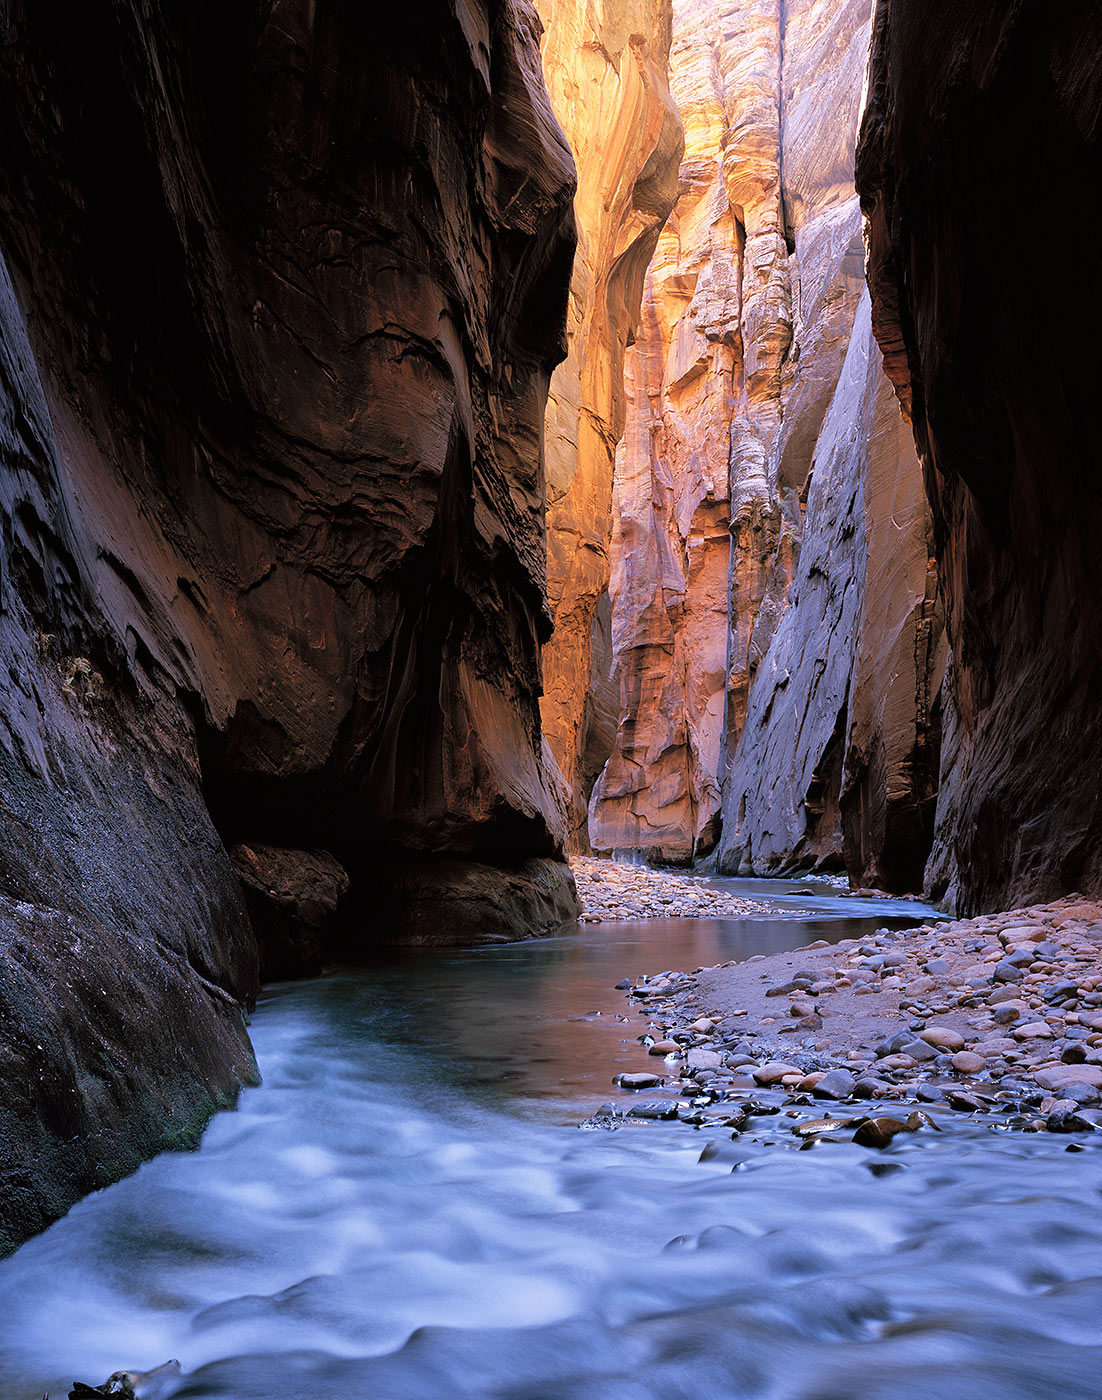 1025 The Narrows, Zion National Park, Utah